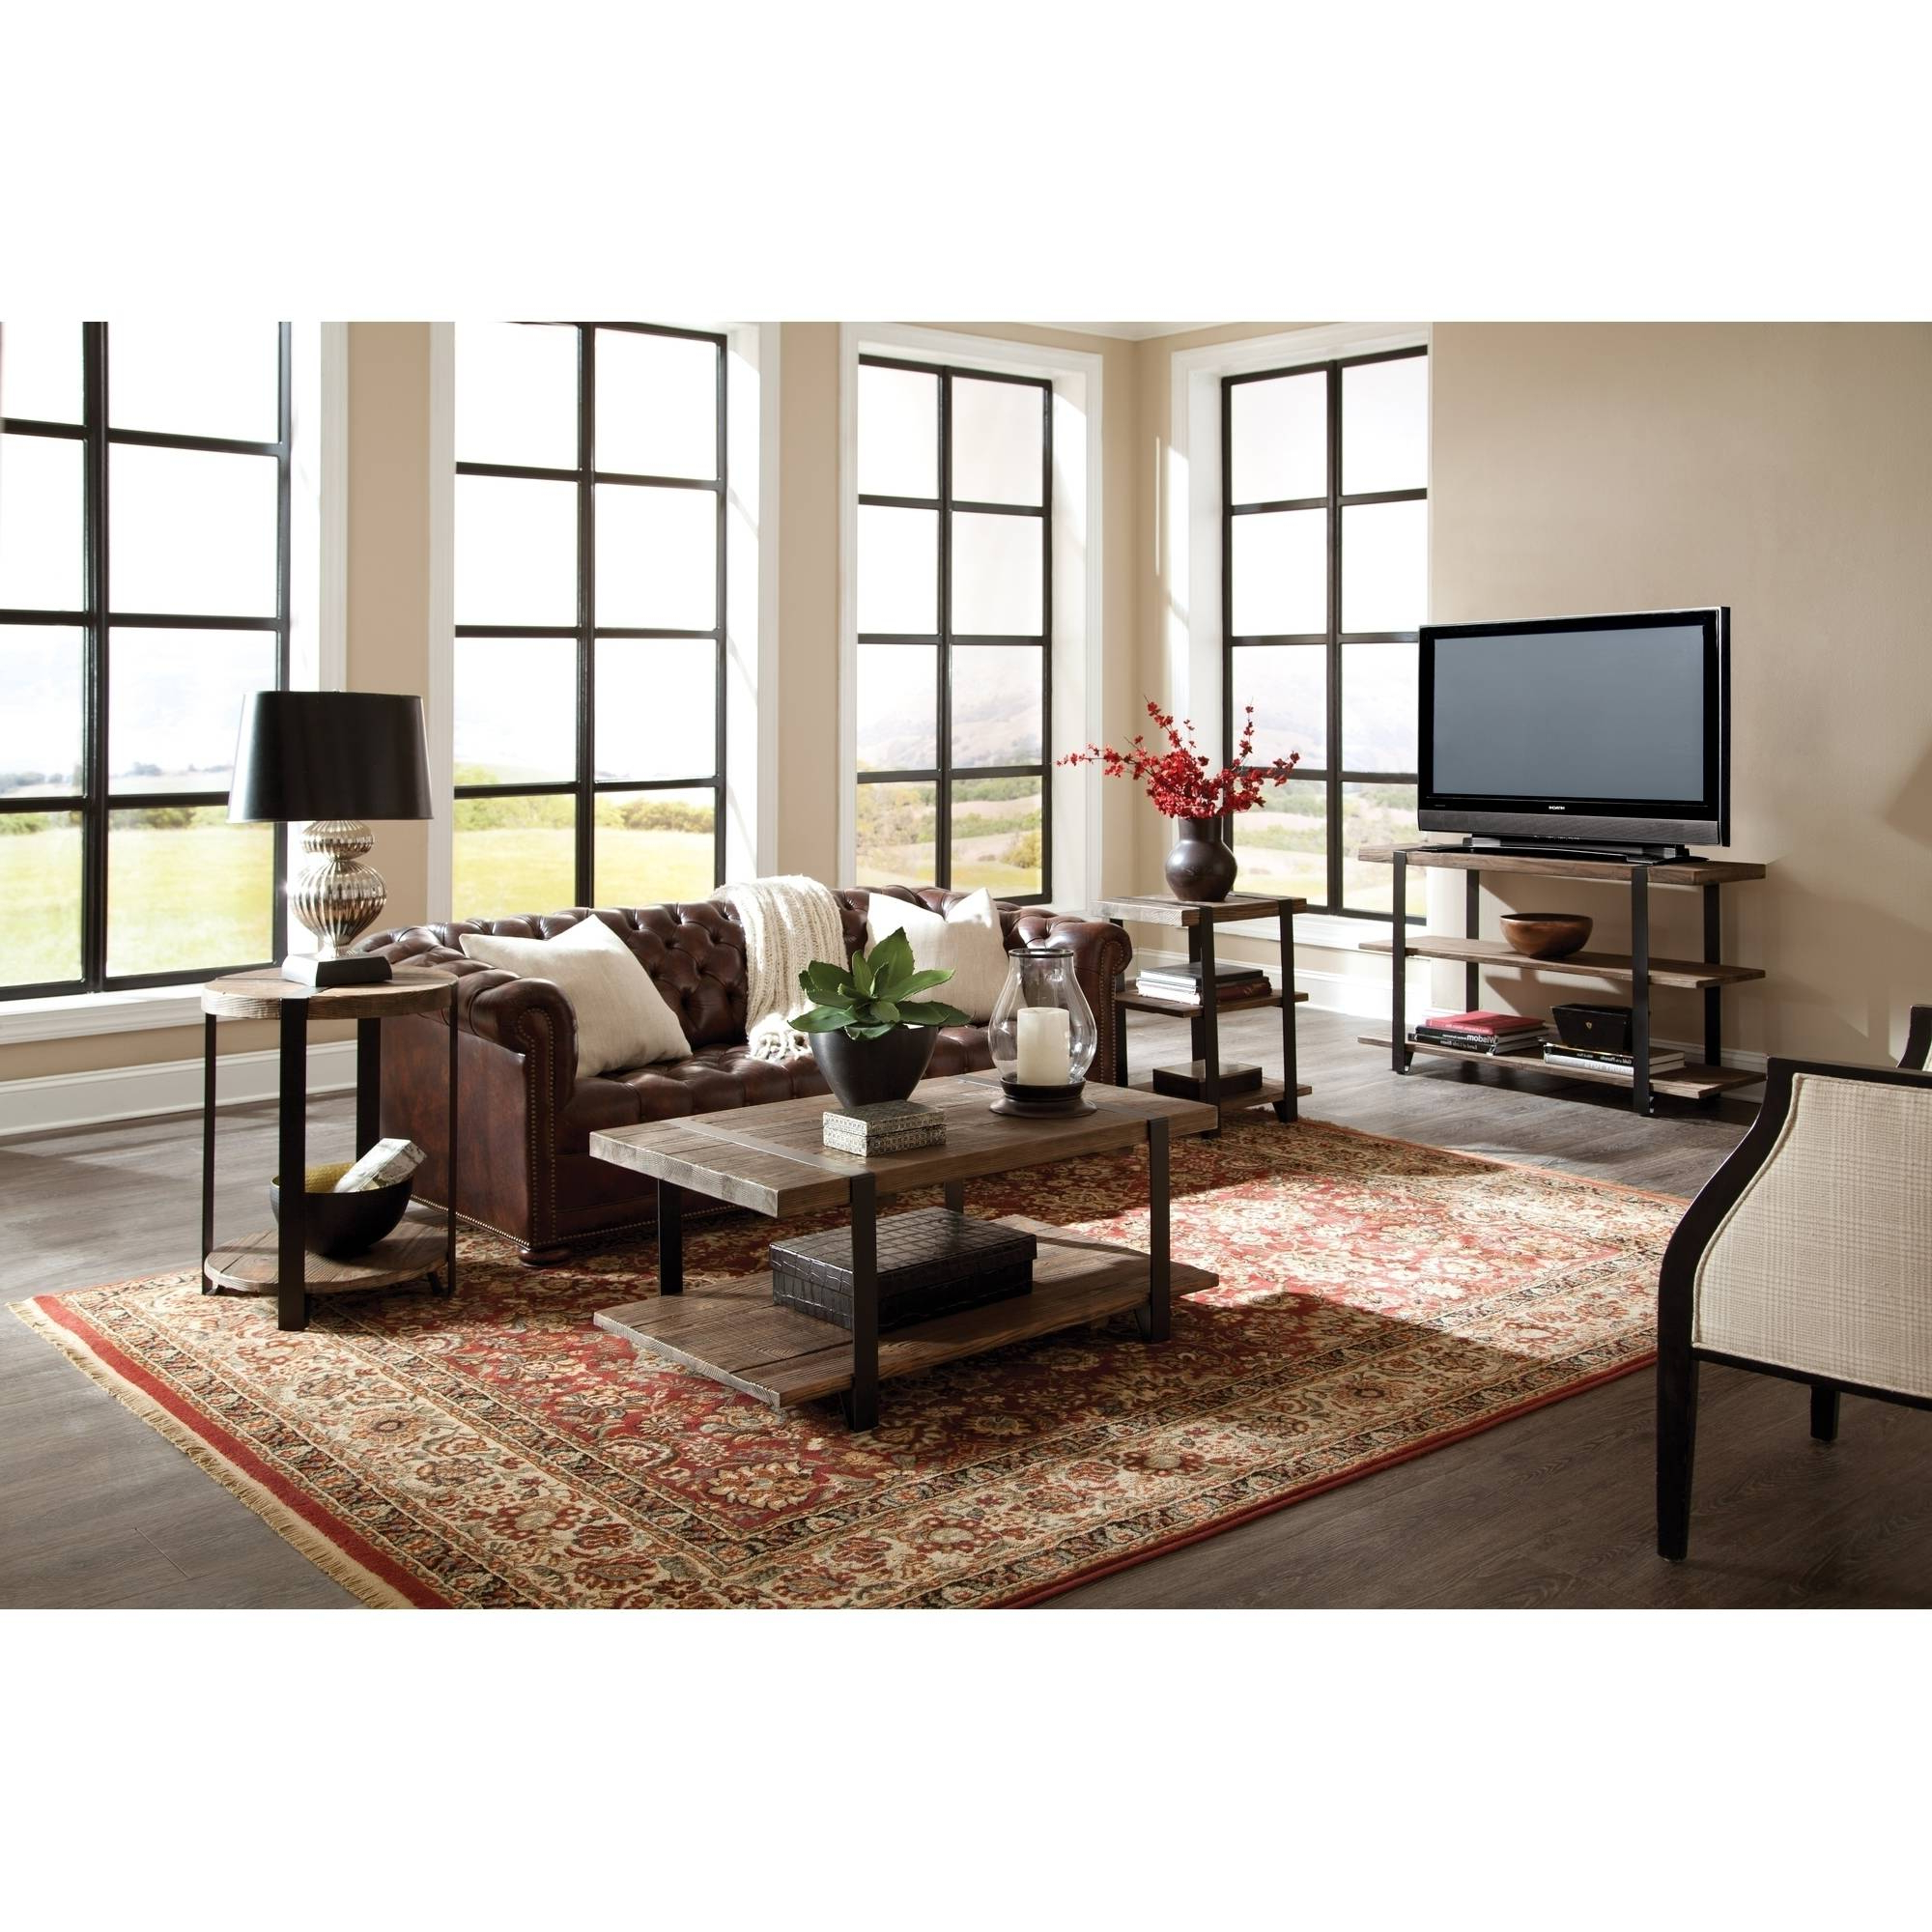 Tv Cabinets Designs Coffee Tables Stands Table As Stand 4 Piece Set Throughout 2018 Tv Cabinets And Coffee Table Sets (View 14 of 20)